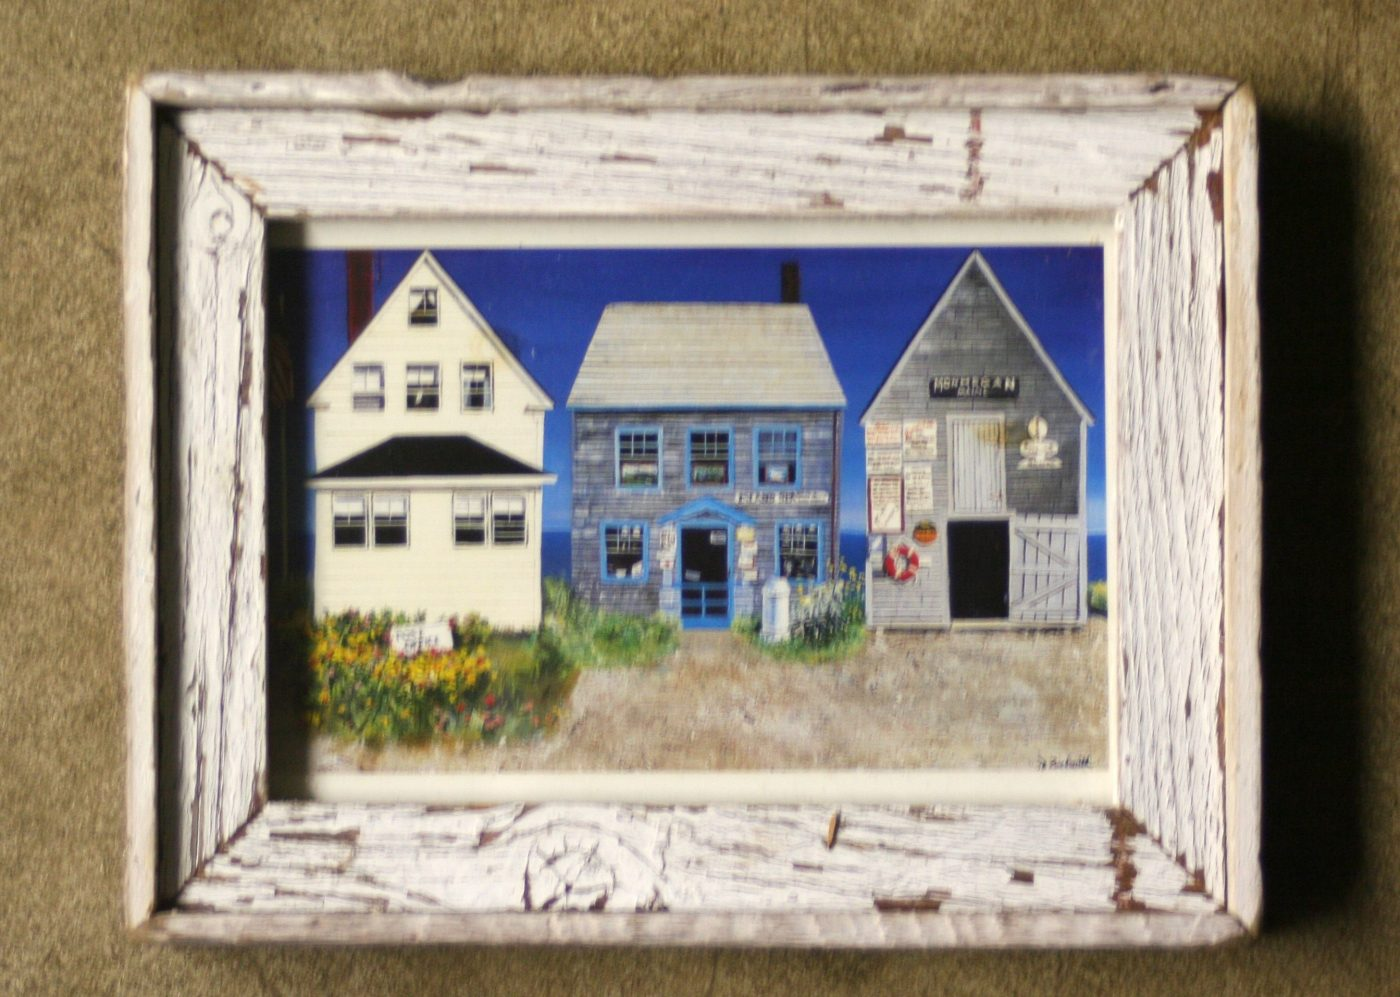 Barnwood Frame with Houses